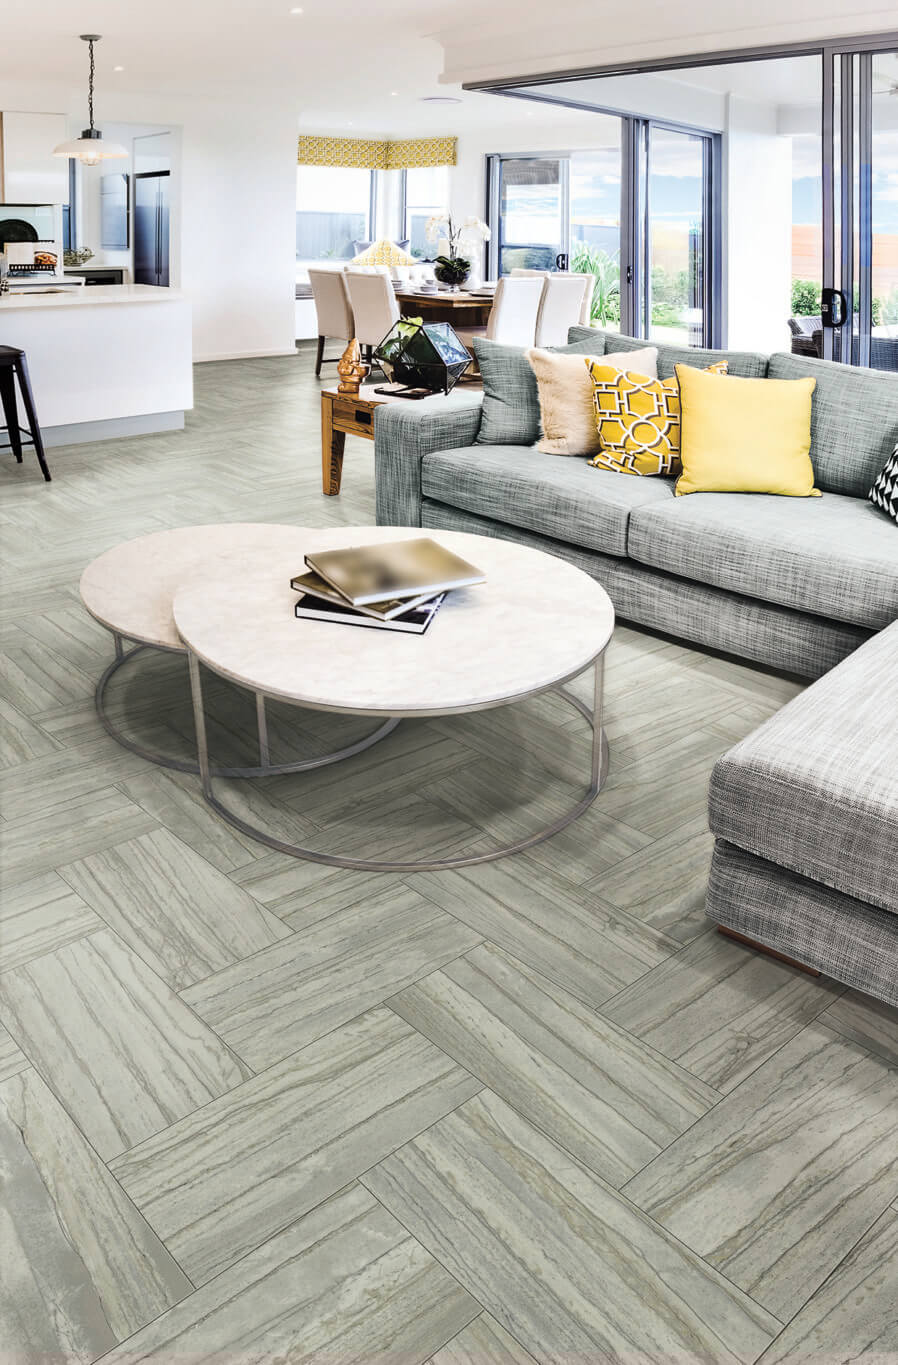 Living room with gray wood-look tile flooring